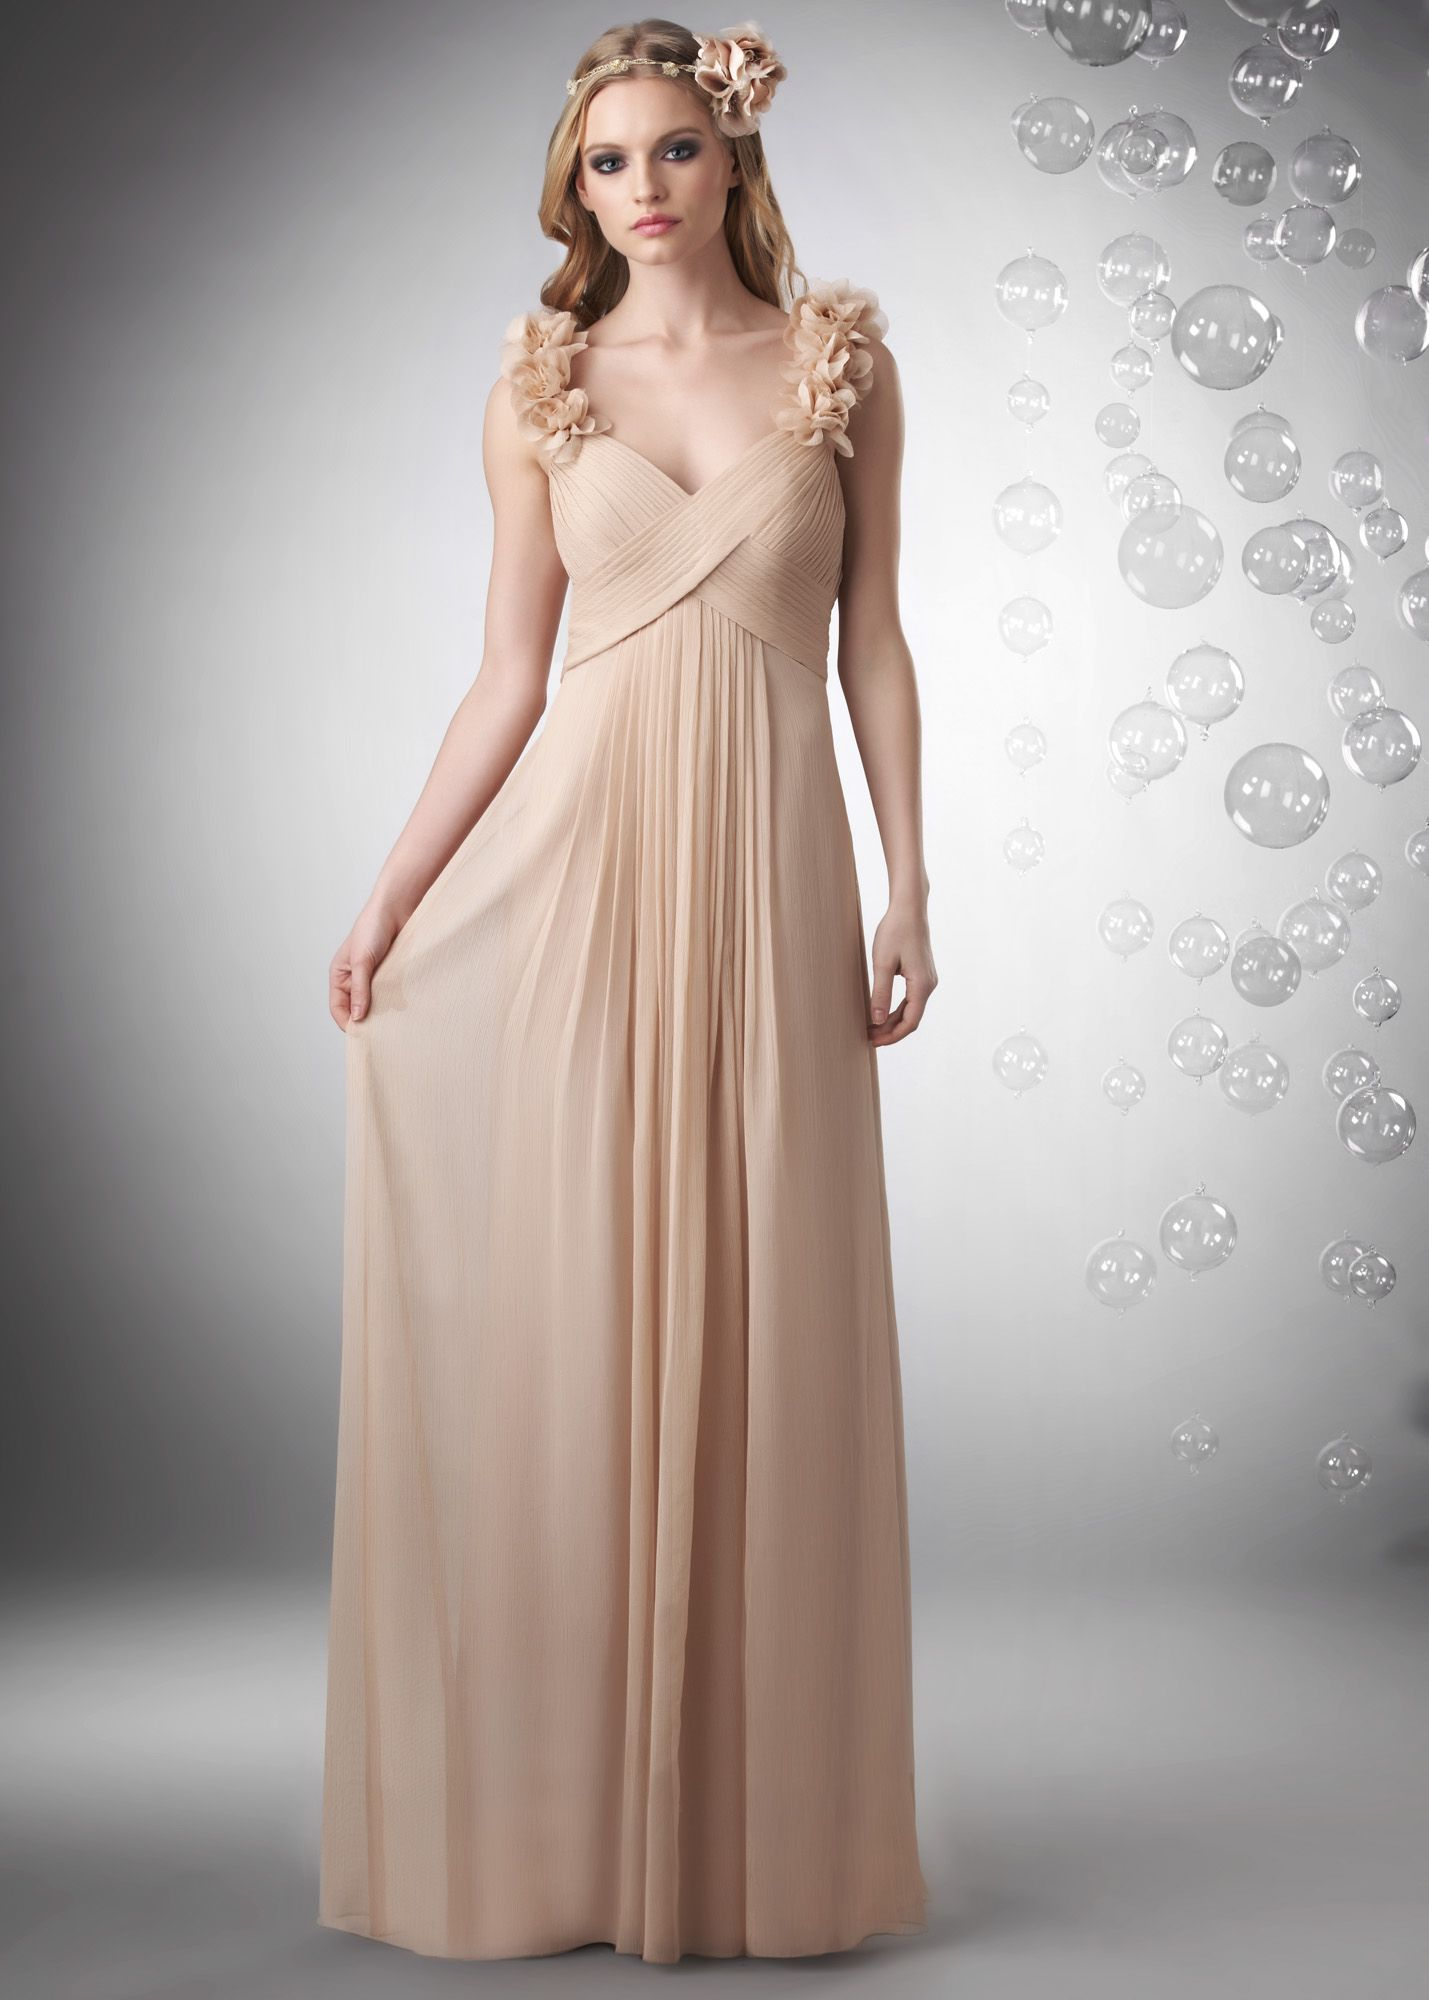 The goddess bari jay 702 nude crinkle chiffon gown rissyroos the goddess bari jay 702 nude crinkle chiffon gown rissyroos ombrellifo Images